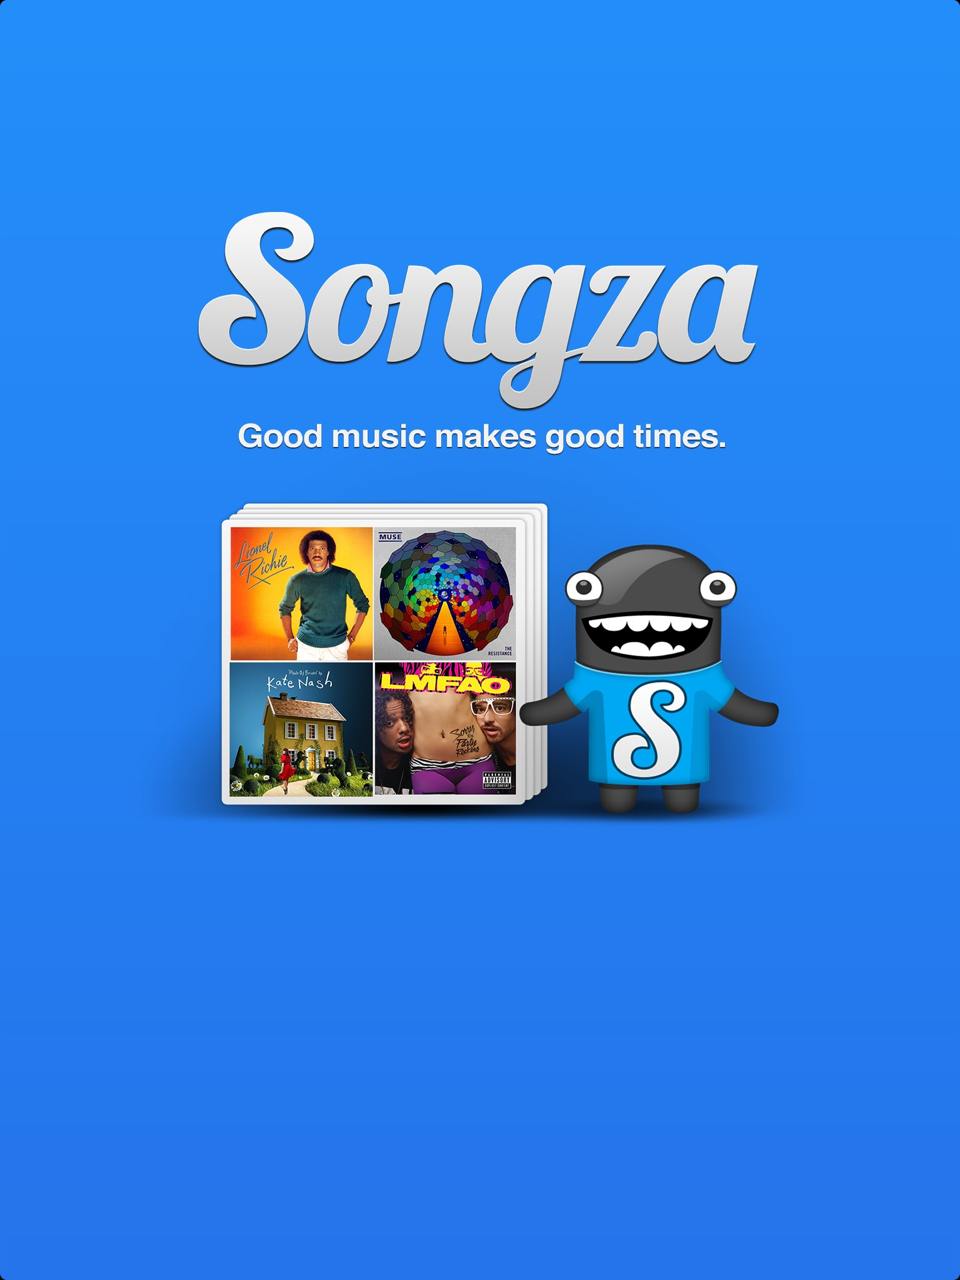 Songza Goes Universal: New iPad Version Comes Complete With Innovative Music Concierge